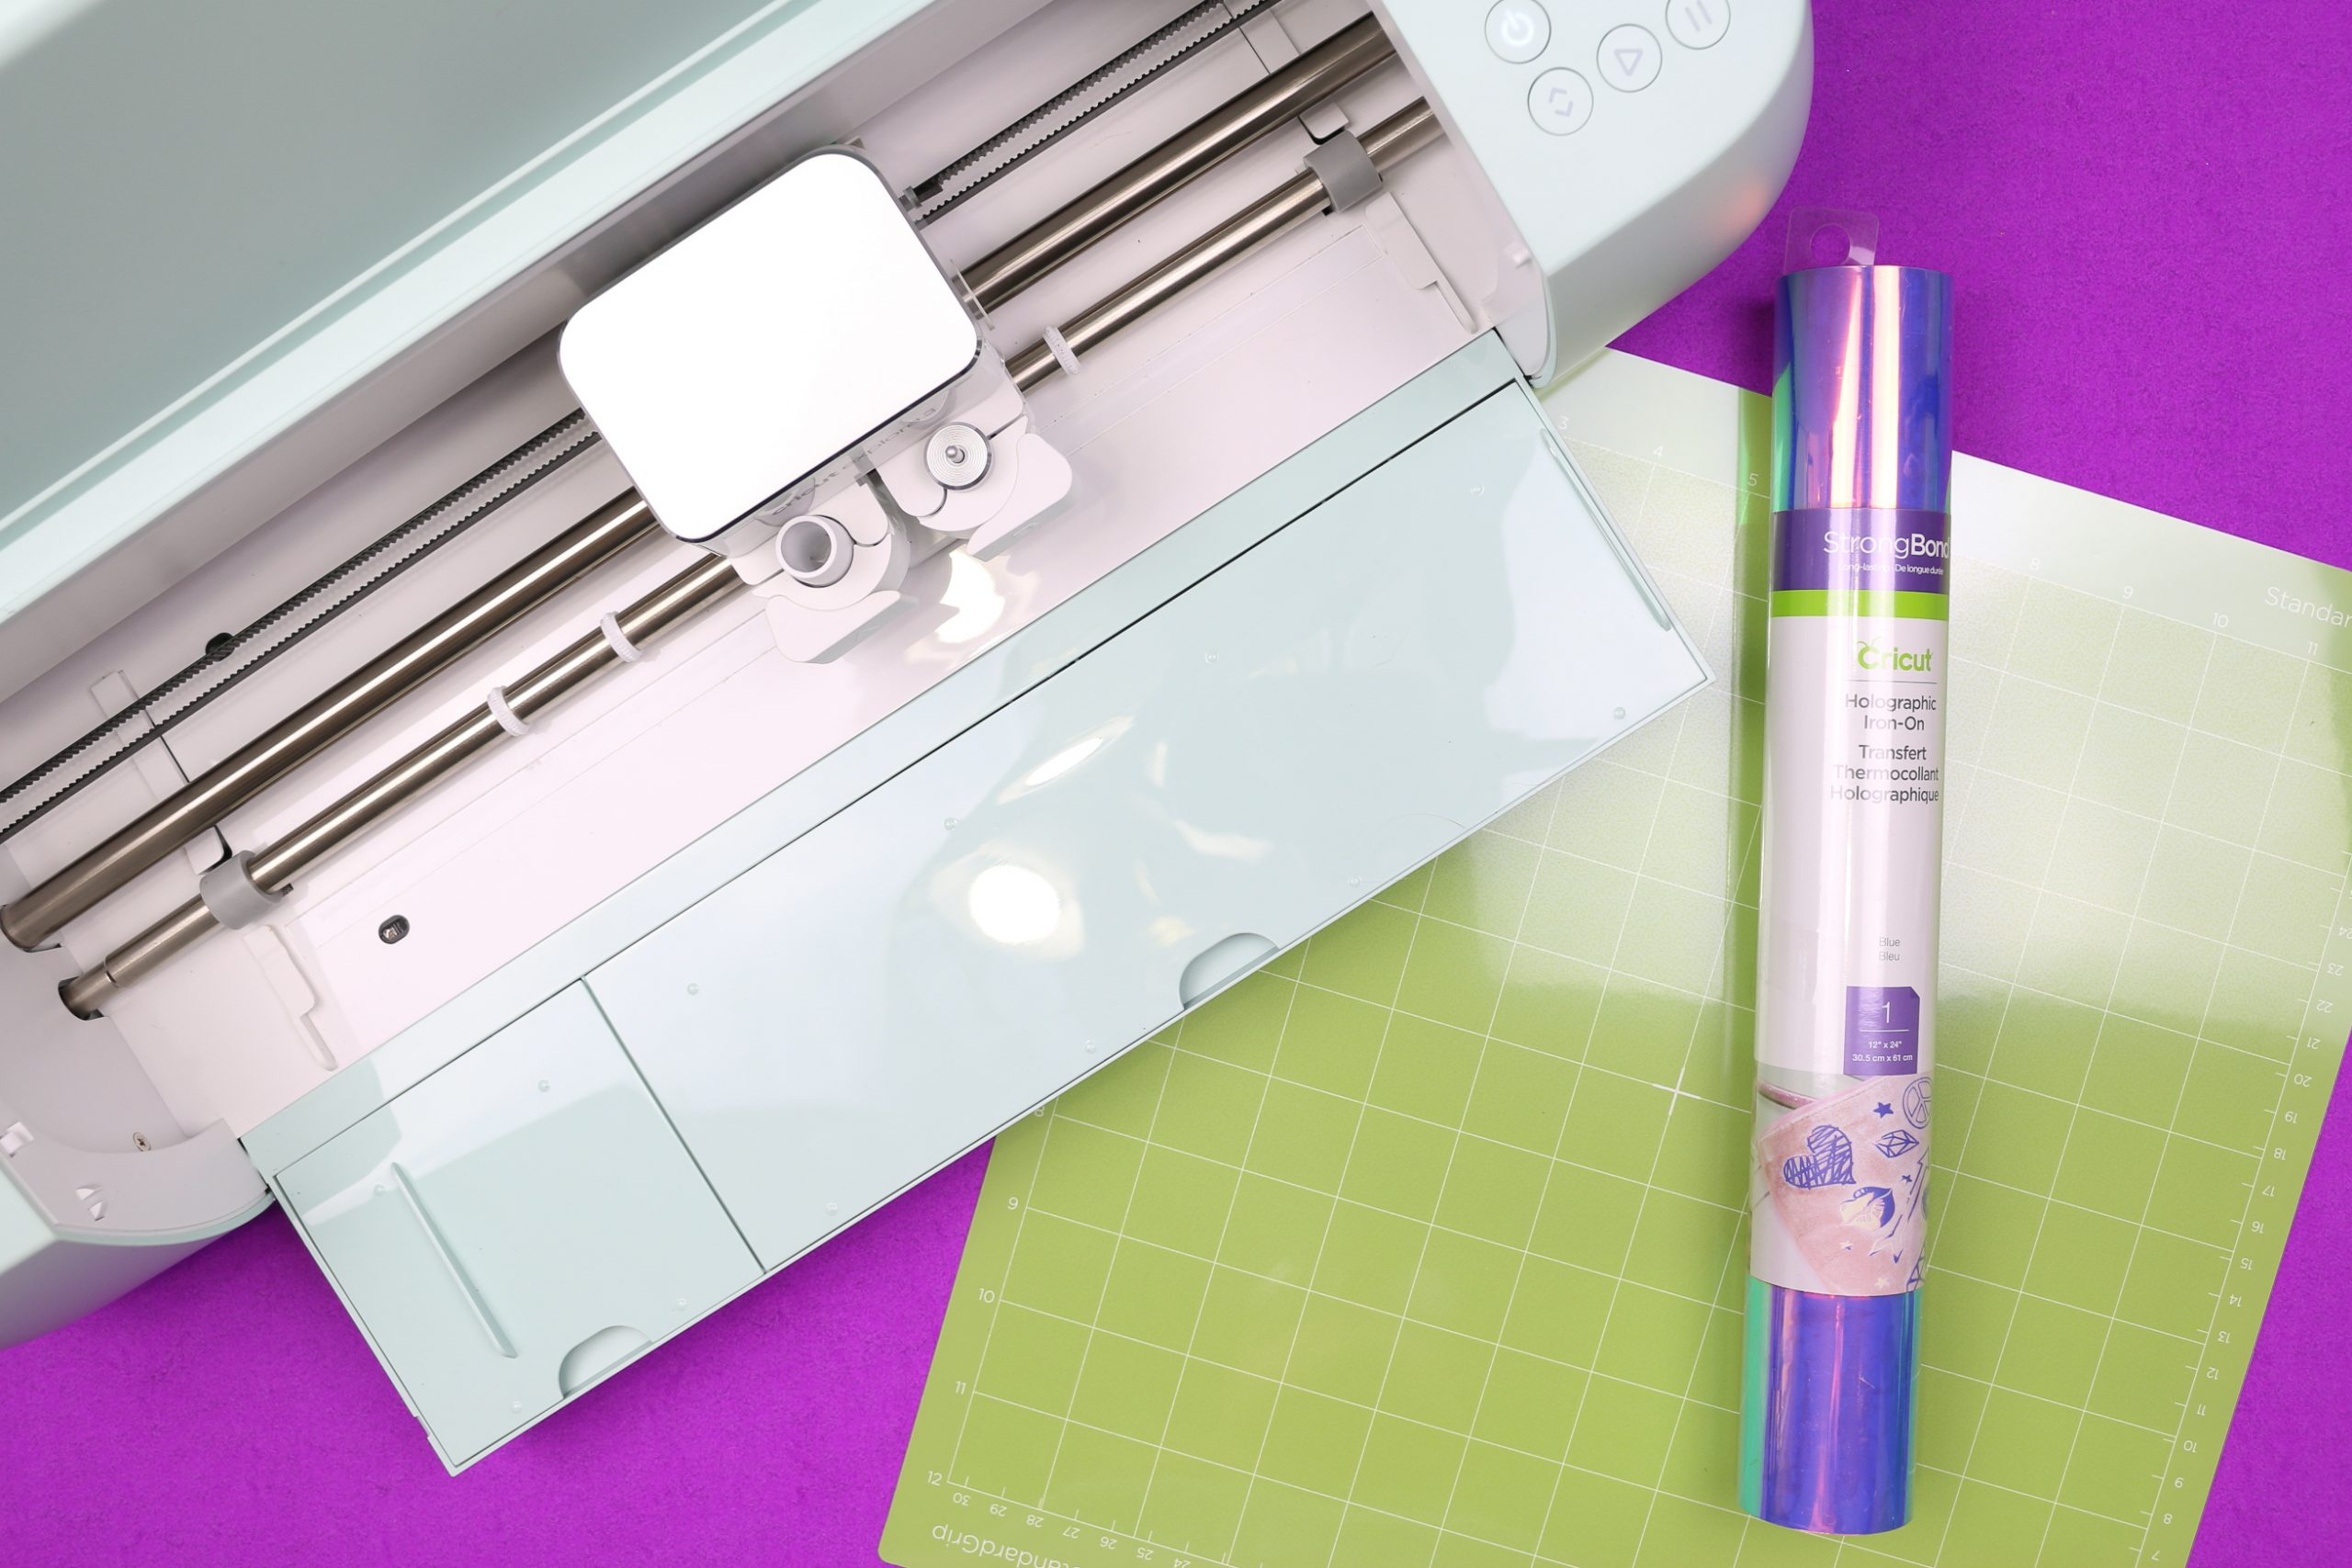 holographic iron on vinyl, a Cricut Explore 3, and a cutting mat